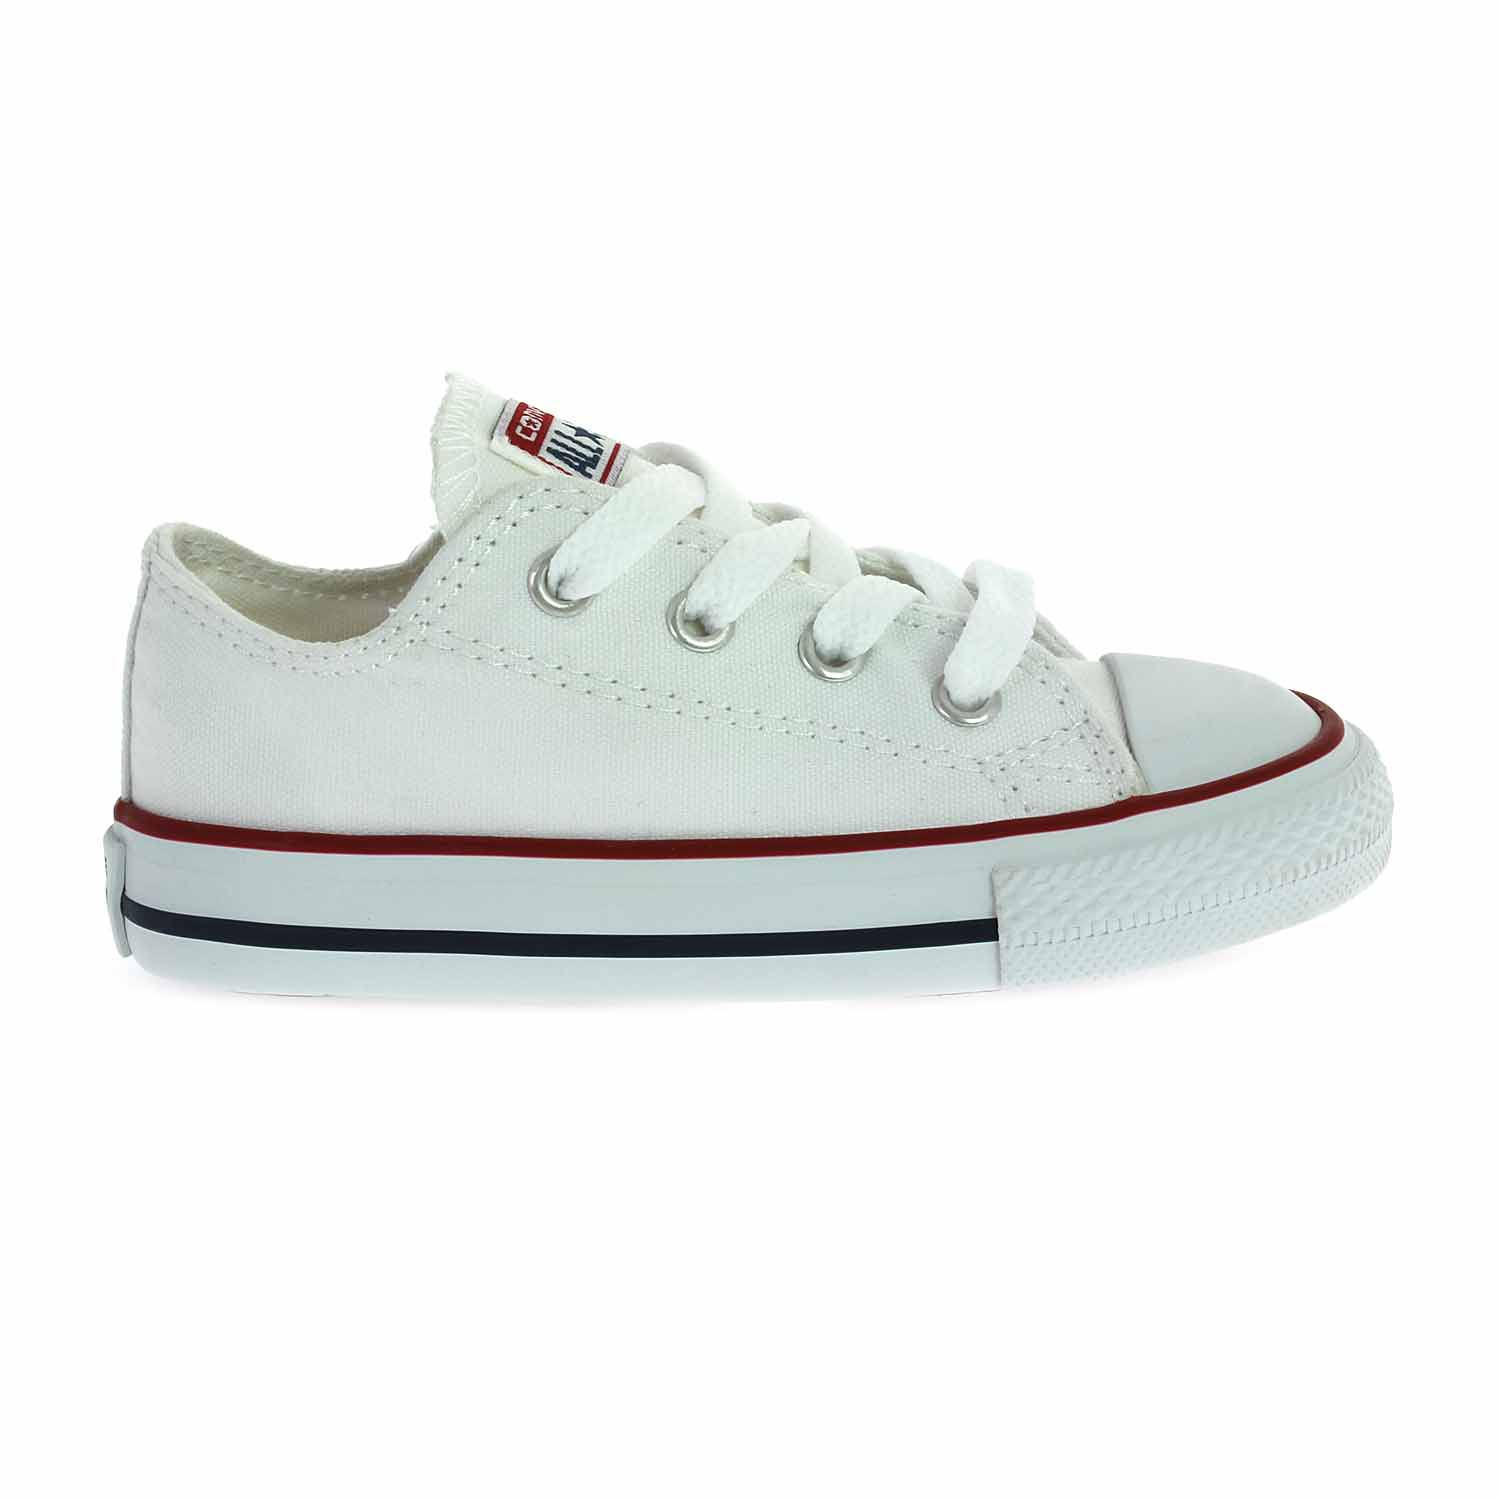 Converse All Star Chuck Taylor I ( 7J256C ) παπούτσια    παιδί    βρεφικά  size 17 27